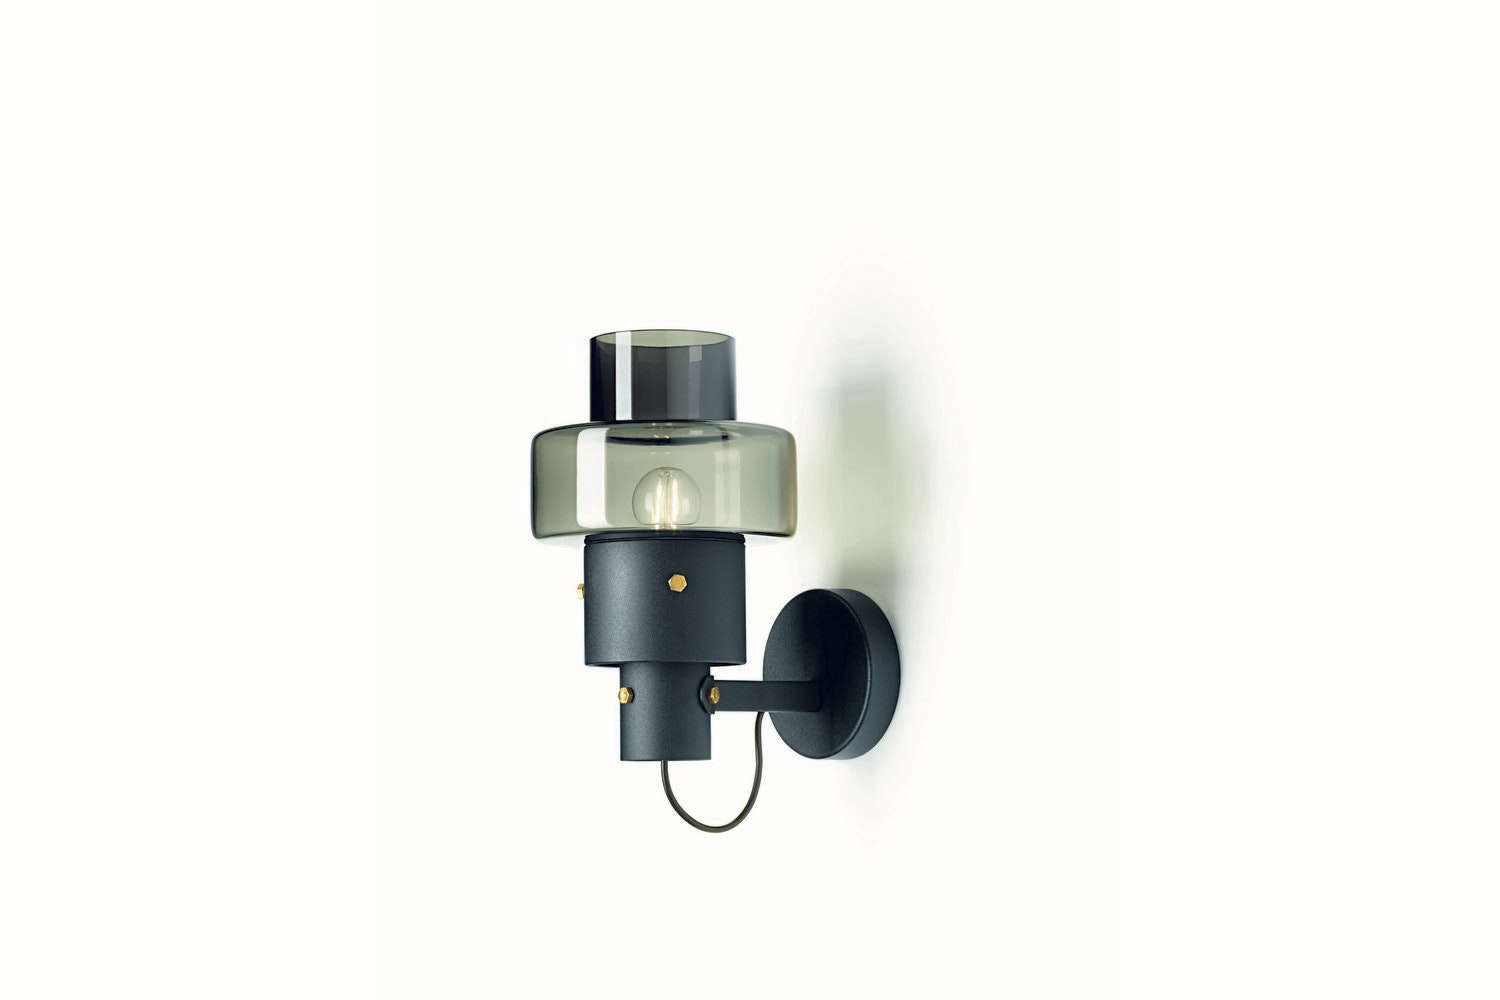 Gask Wall Lamp by Successful Living from DIESEL for Foscarini